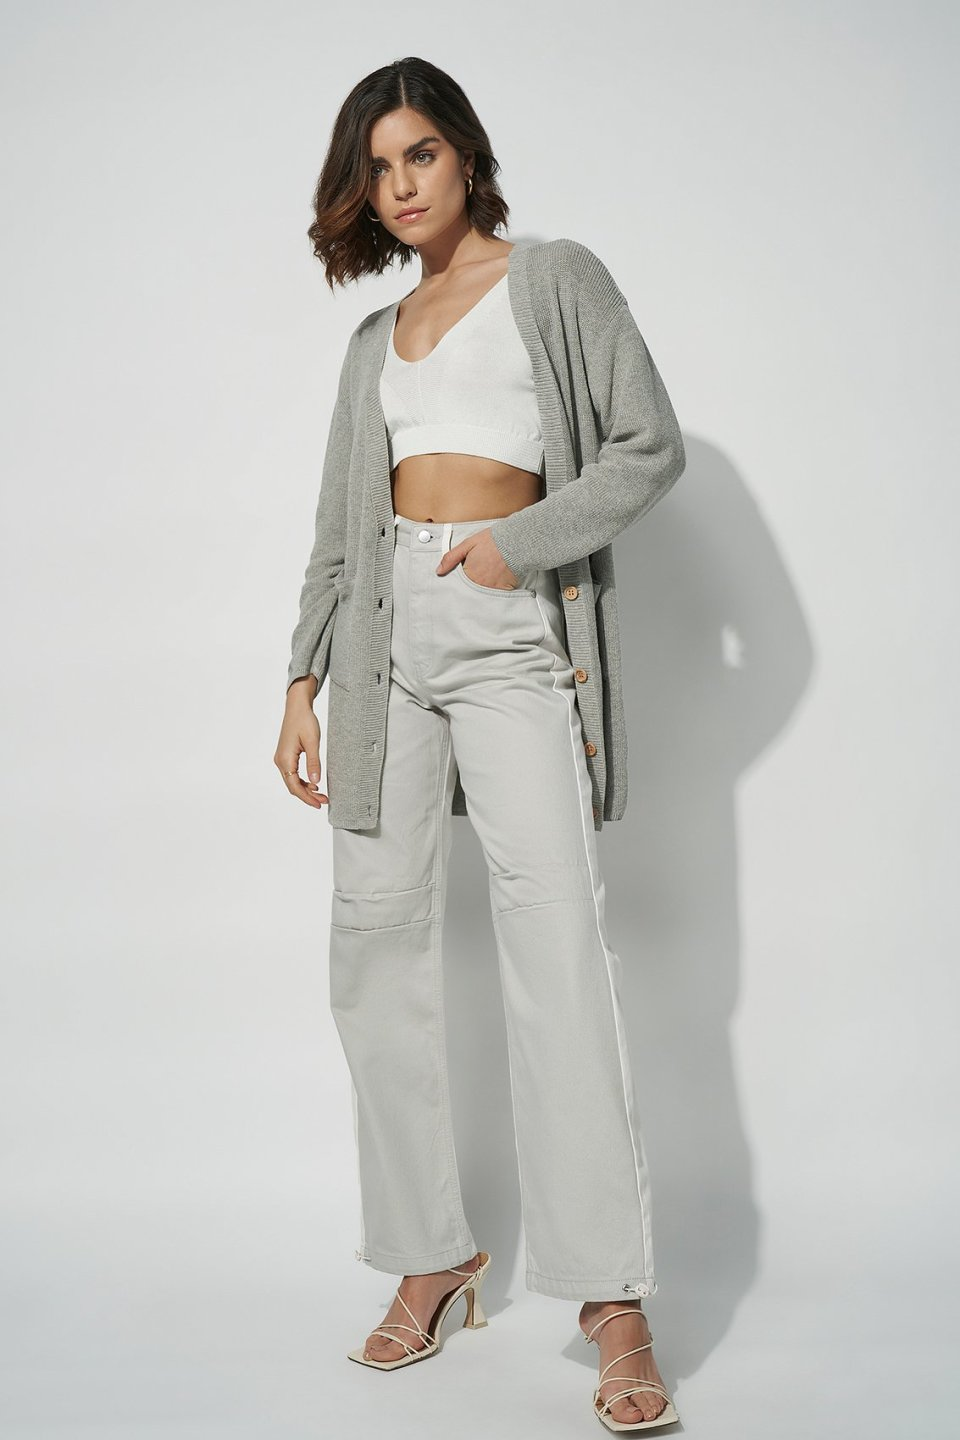 100% Recycled Oversized Button Up Cardigan